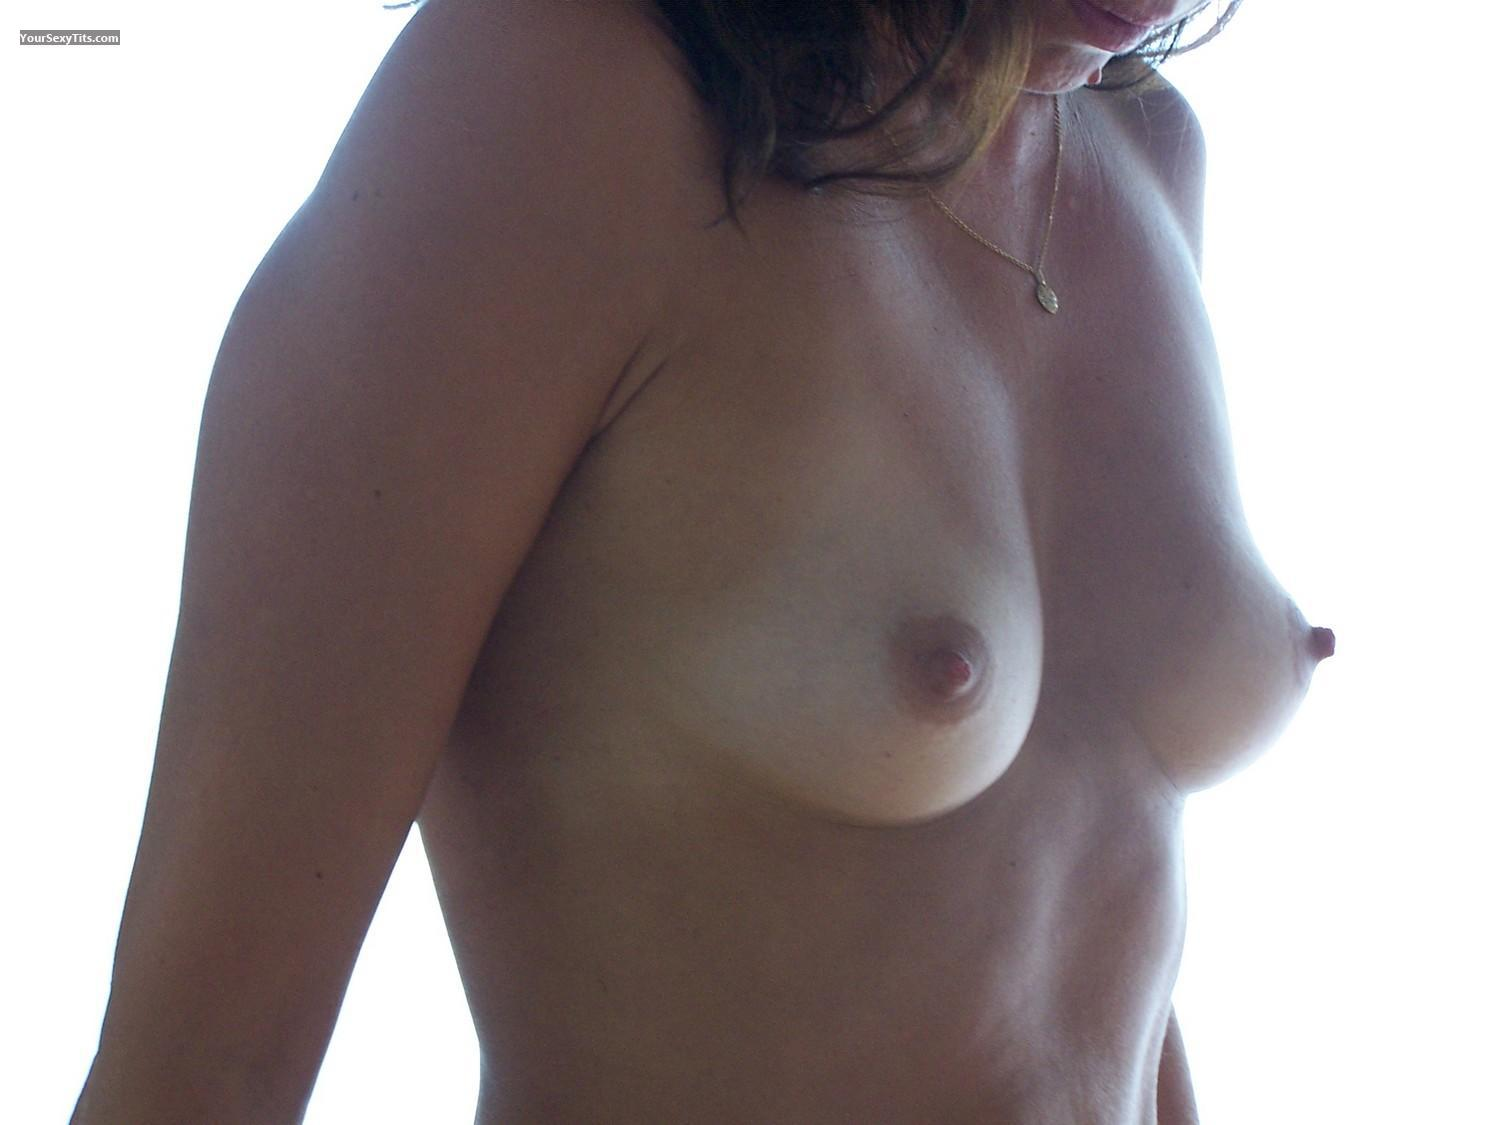 Tit Flash: Small Tits - BB Europe from France